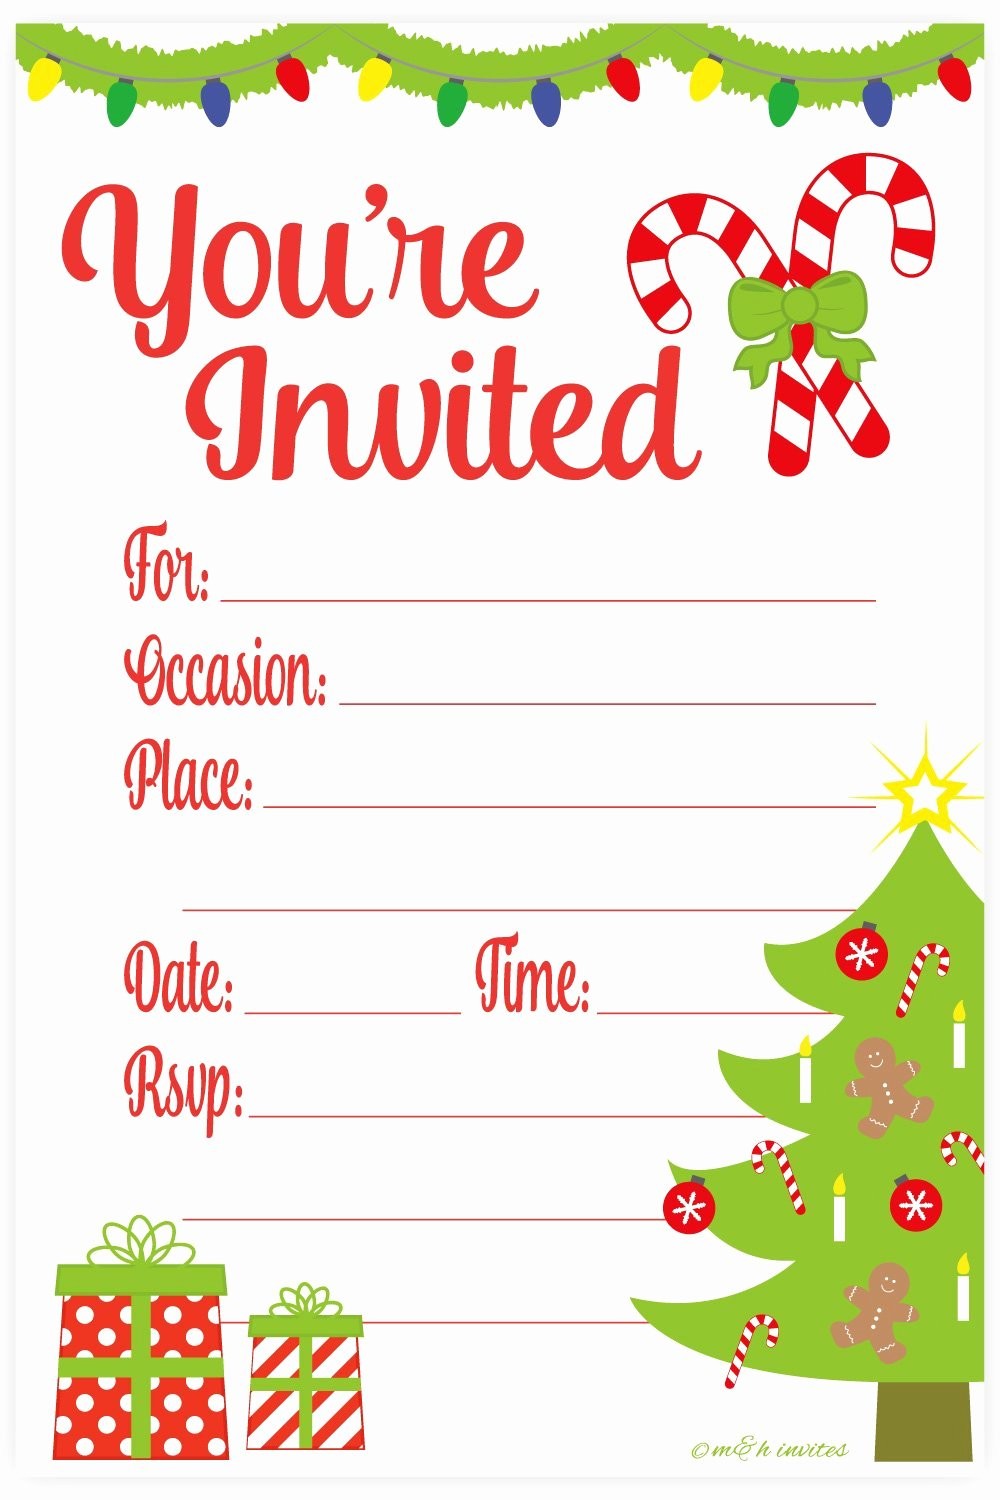 Free Christmas Party Invitations Template Lovely Amazon Snowflake Classic Christmas Invitations Fill